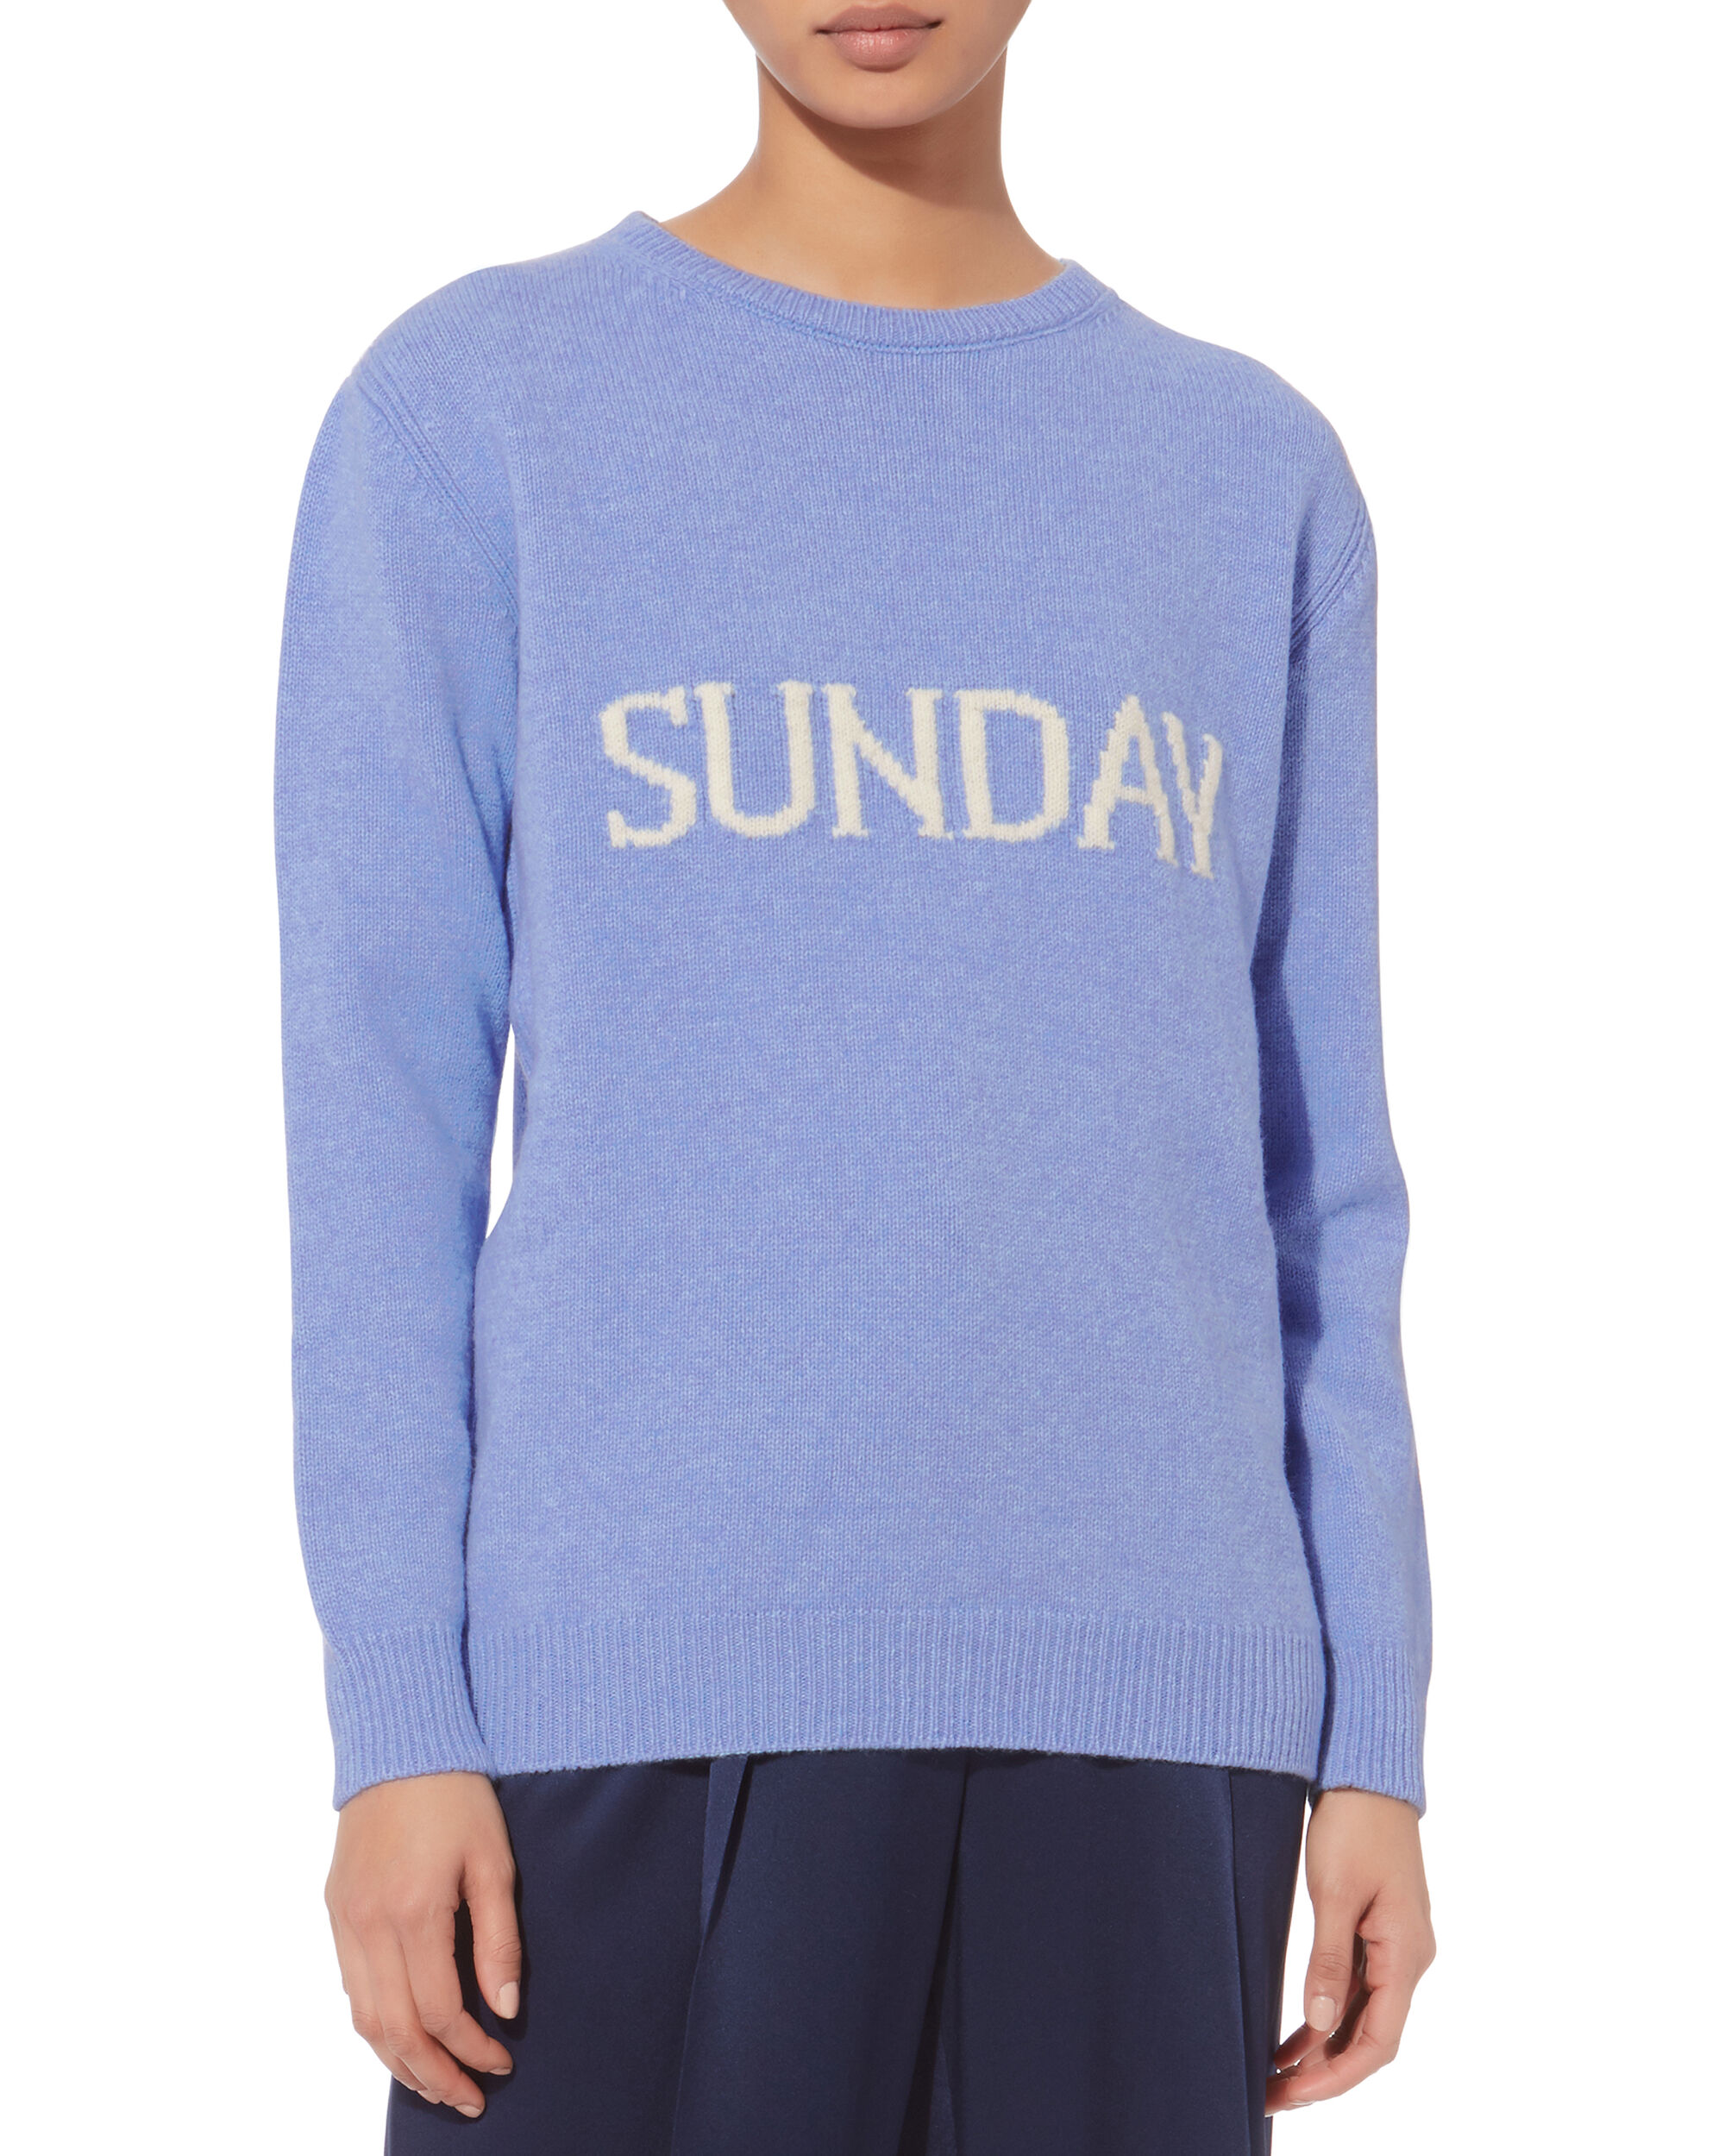 Sunday Sweater, PURPLE-LT, hi-res